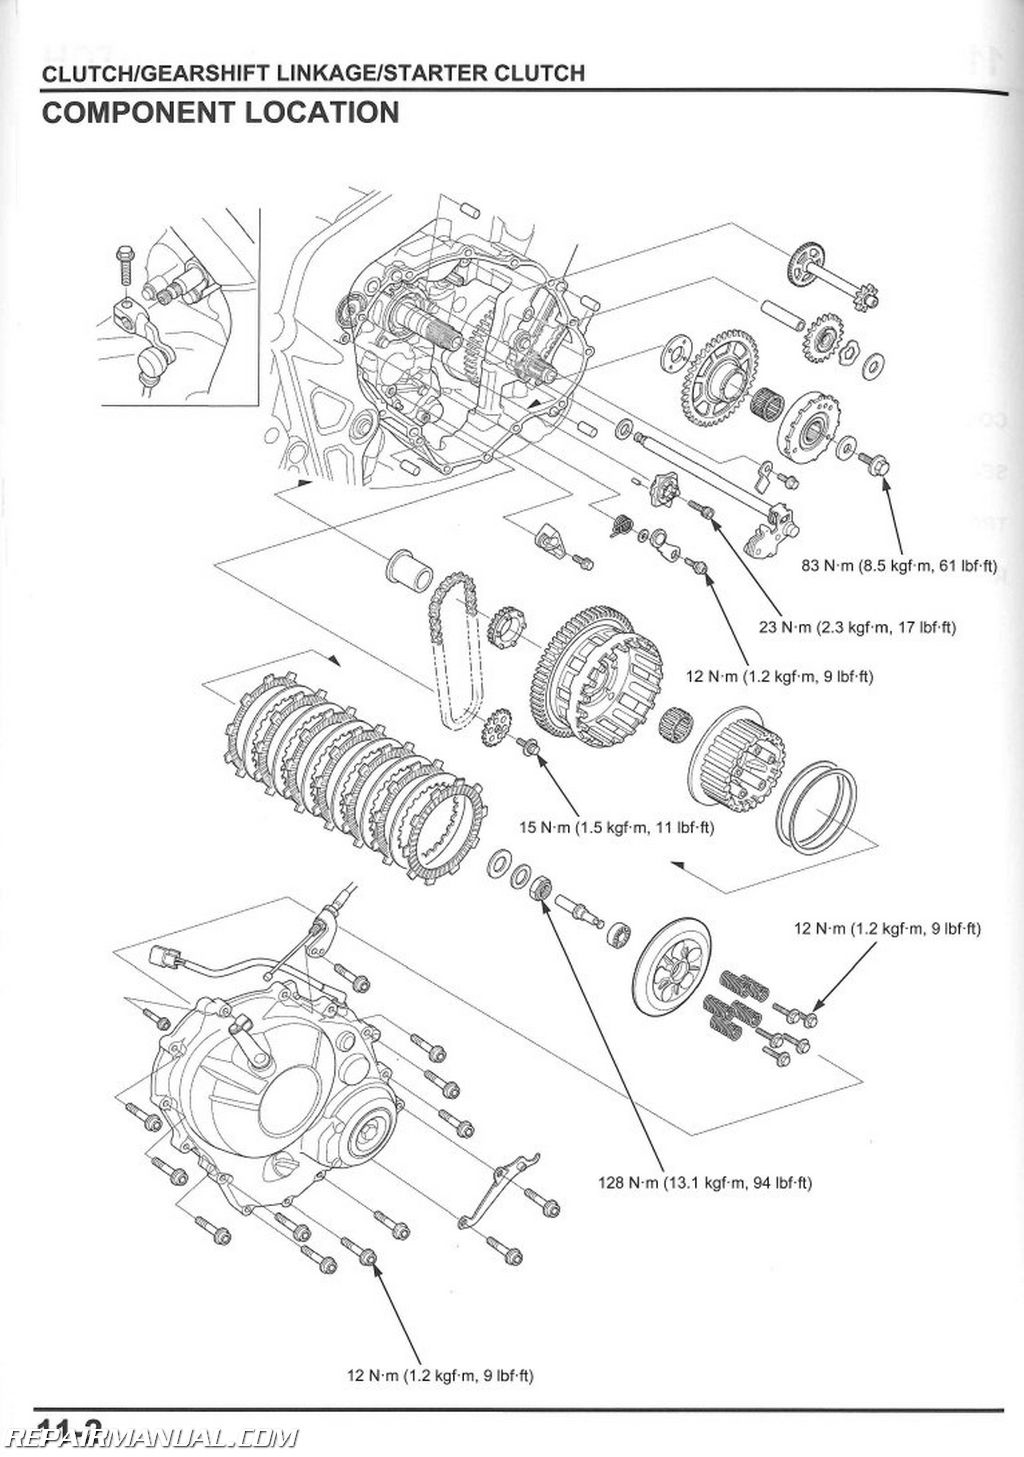 Magneto Wiring Diagram Ignition System Wiring Diagram Of Eton Atv